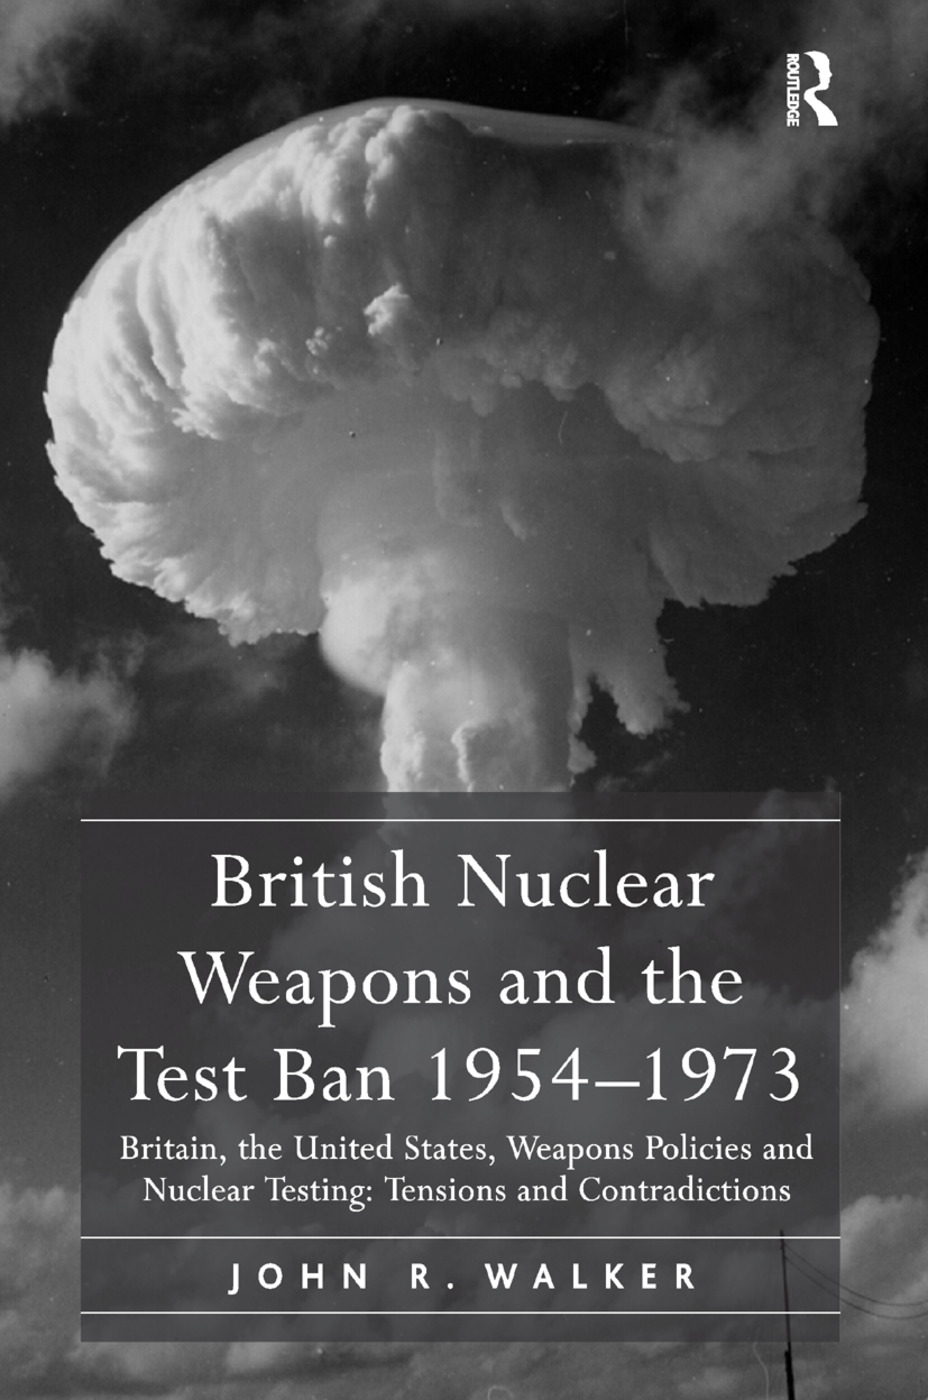 British Nuclear Weapons and the Test Ban 1954–1973: Britain, the United States, Weapons Policies and Nuclear Testing: Tensions and Contradictions book cover